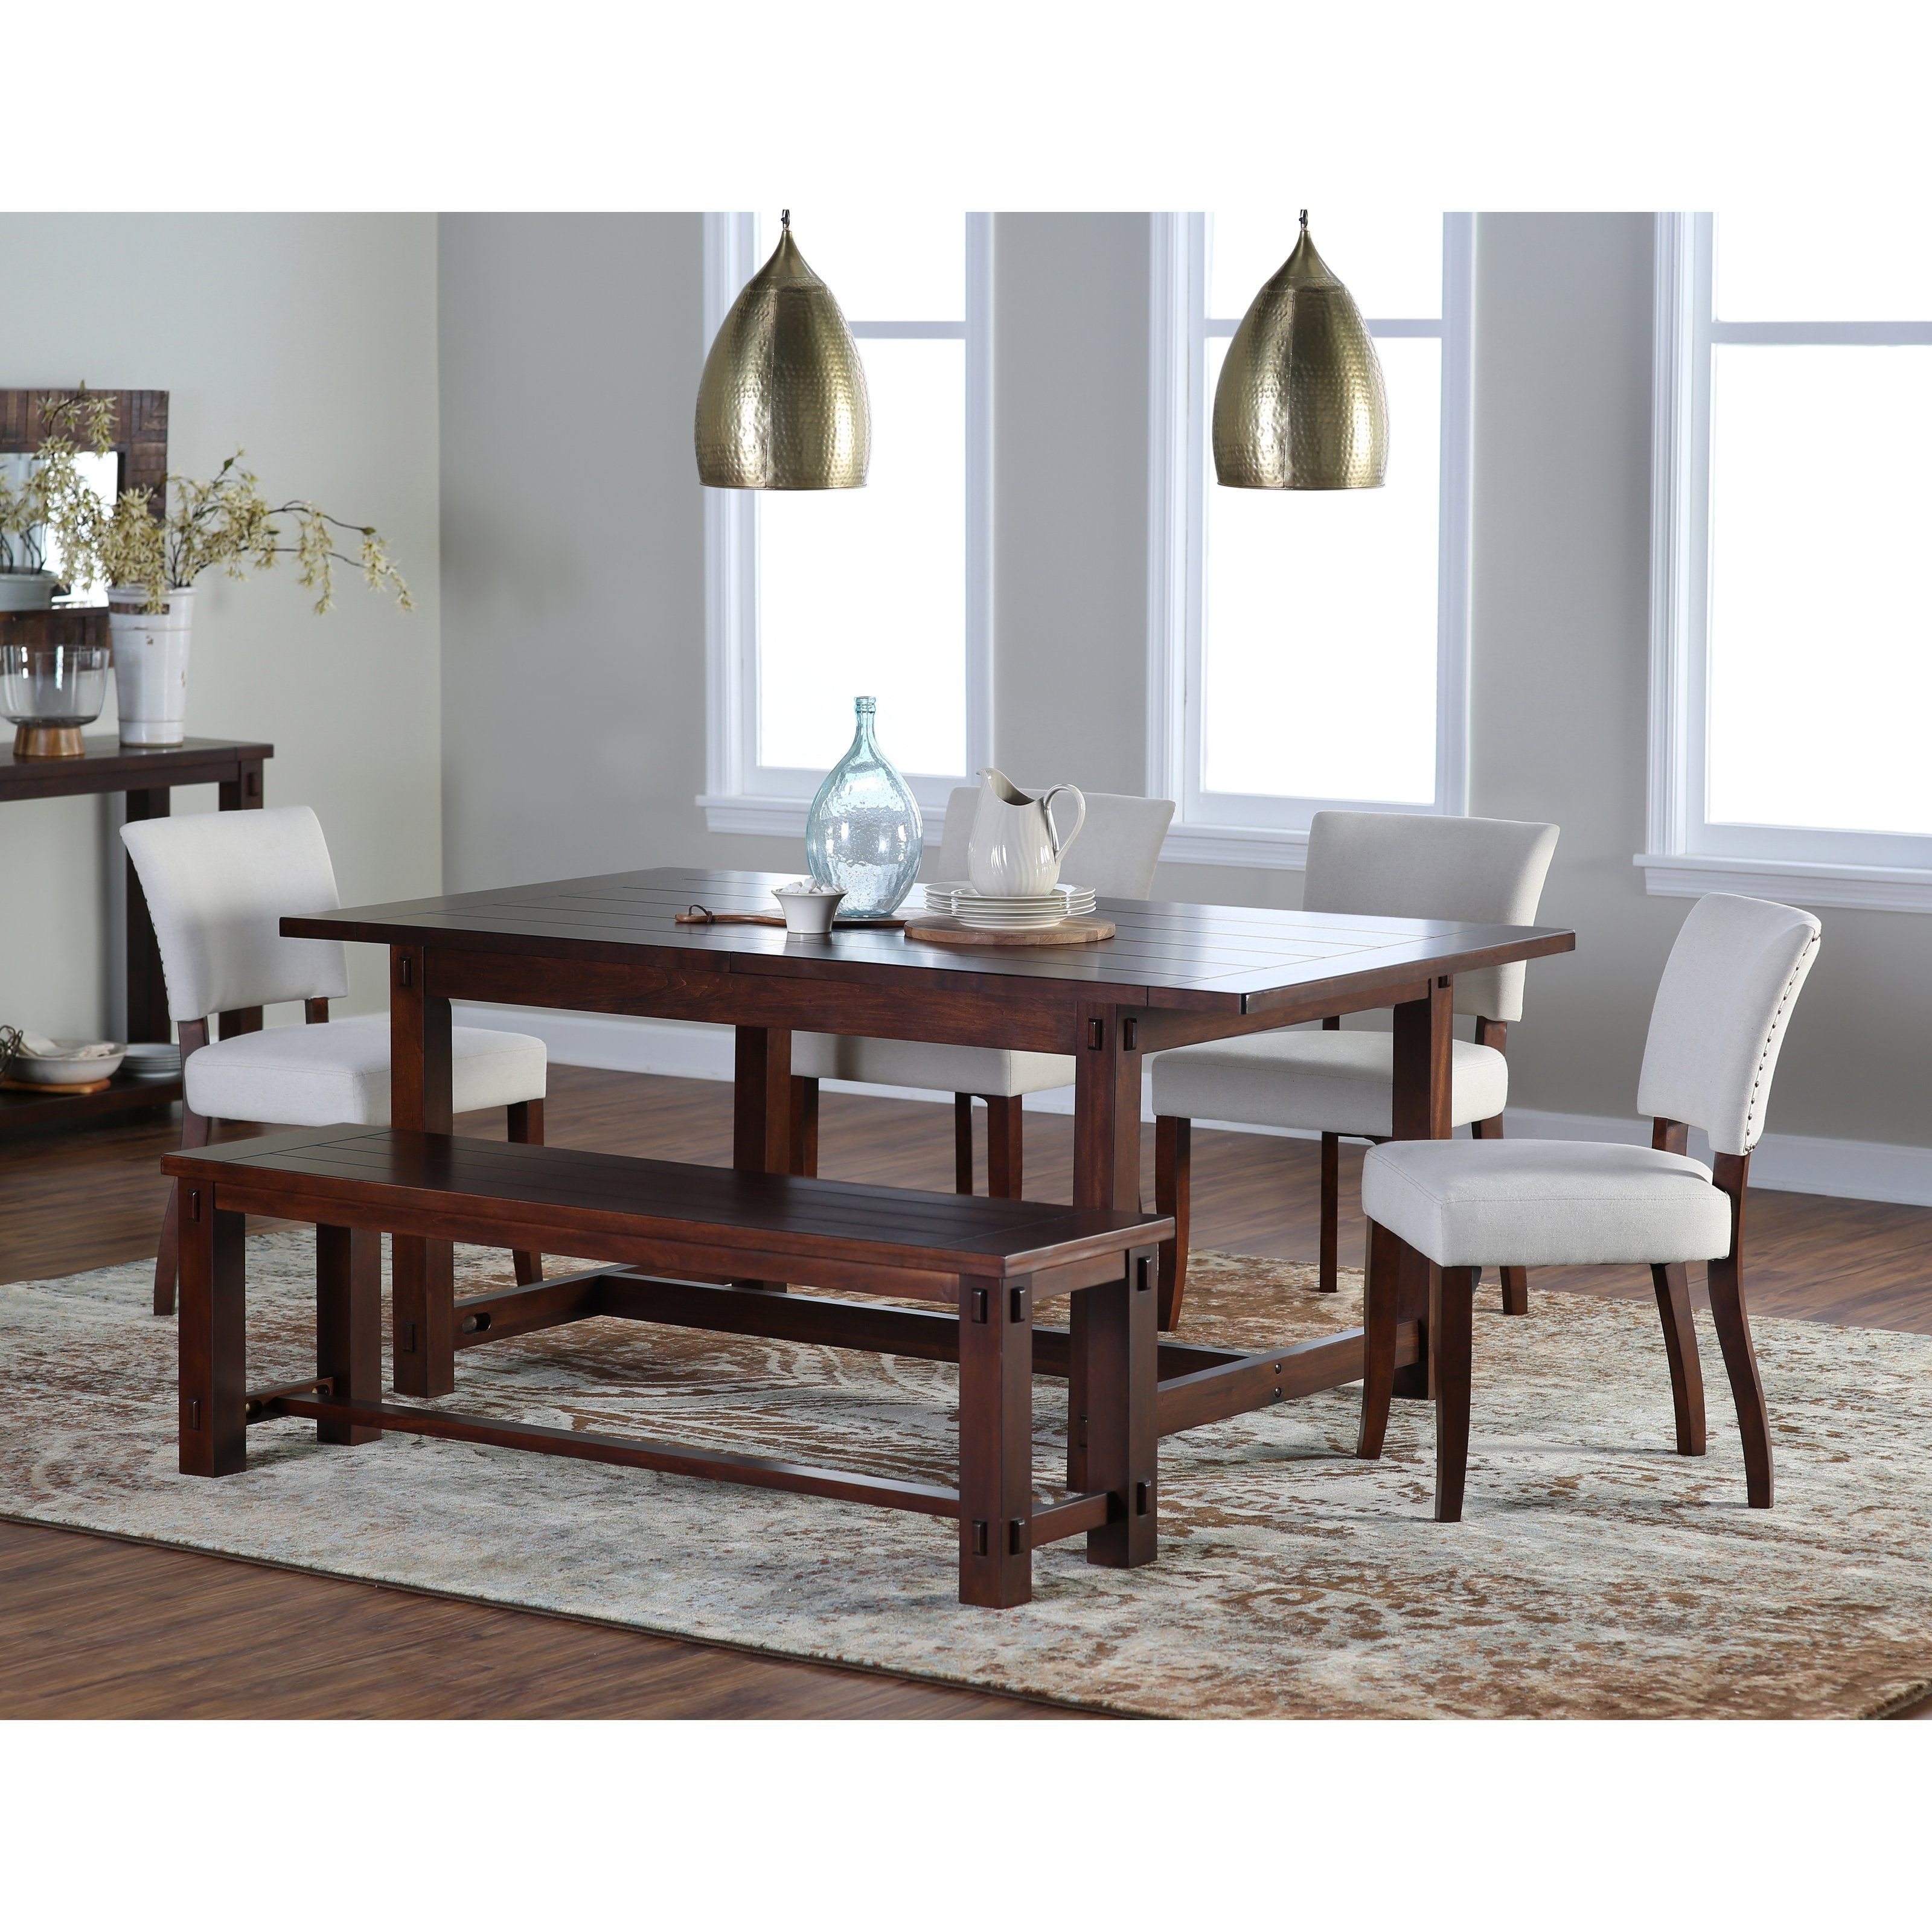 Love the 2 brass light fixtures and dining chairs. Belham Living ...